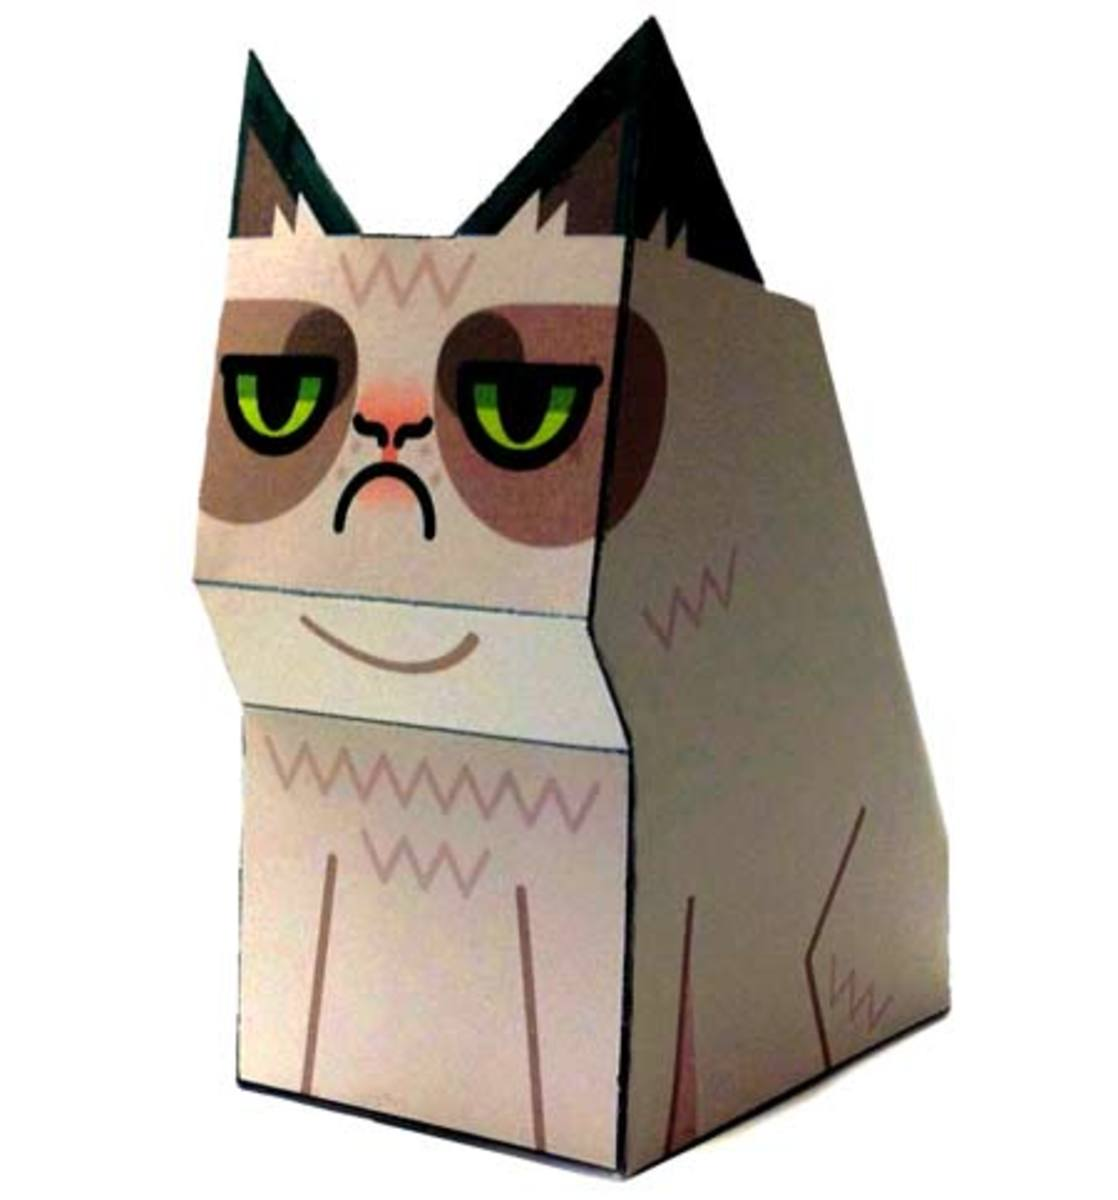 Make a 3-D Grumpy Cat From Paper